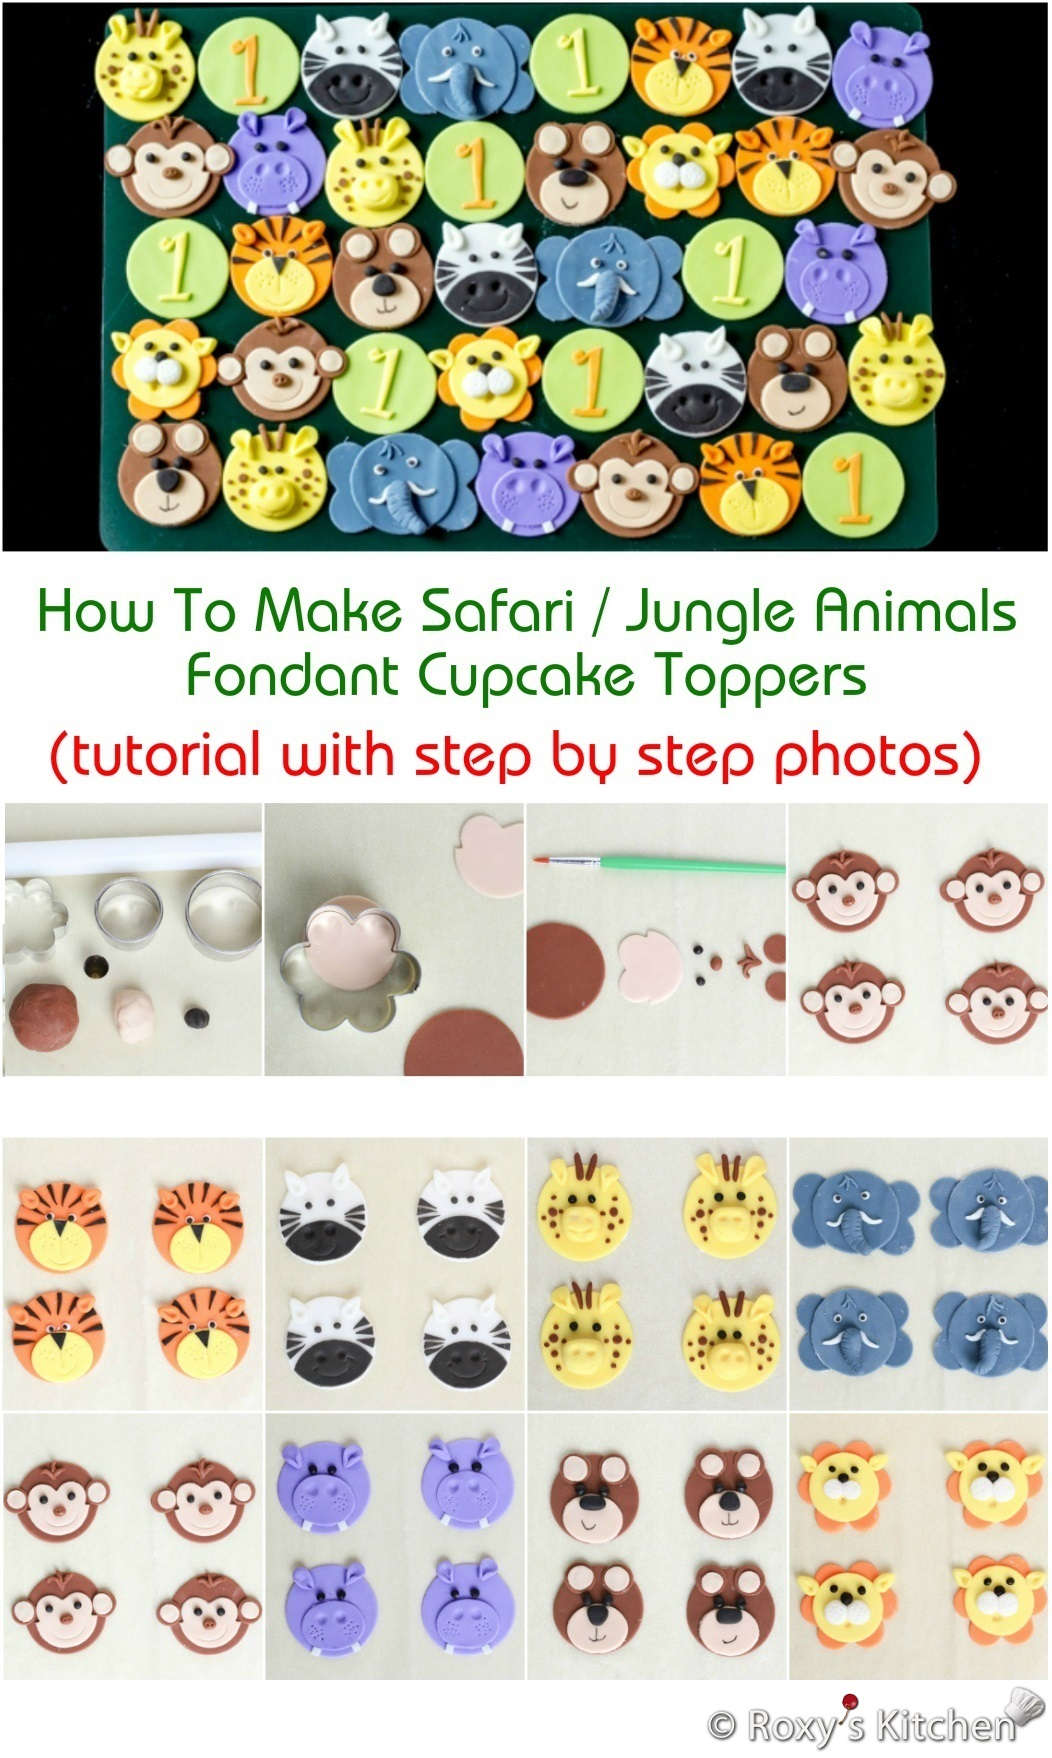 How To Make Safari Jungle Animals Fondant Cupcake